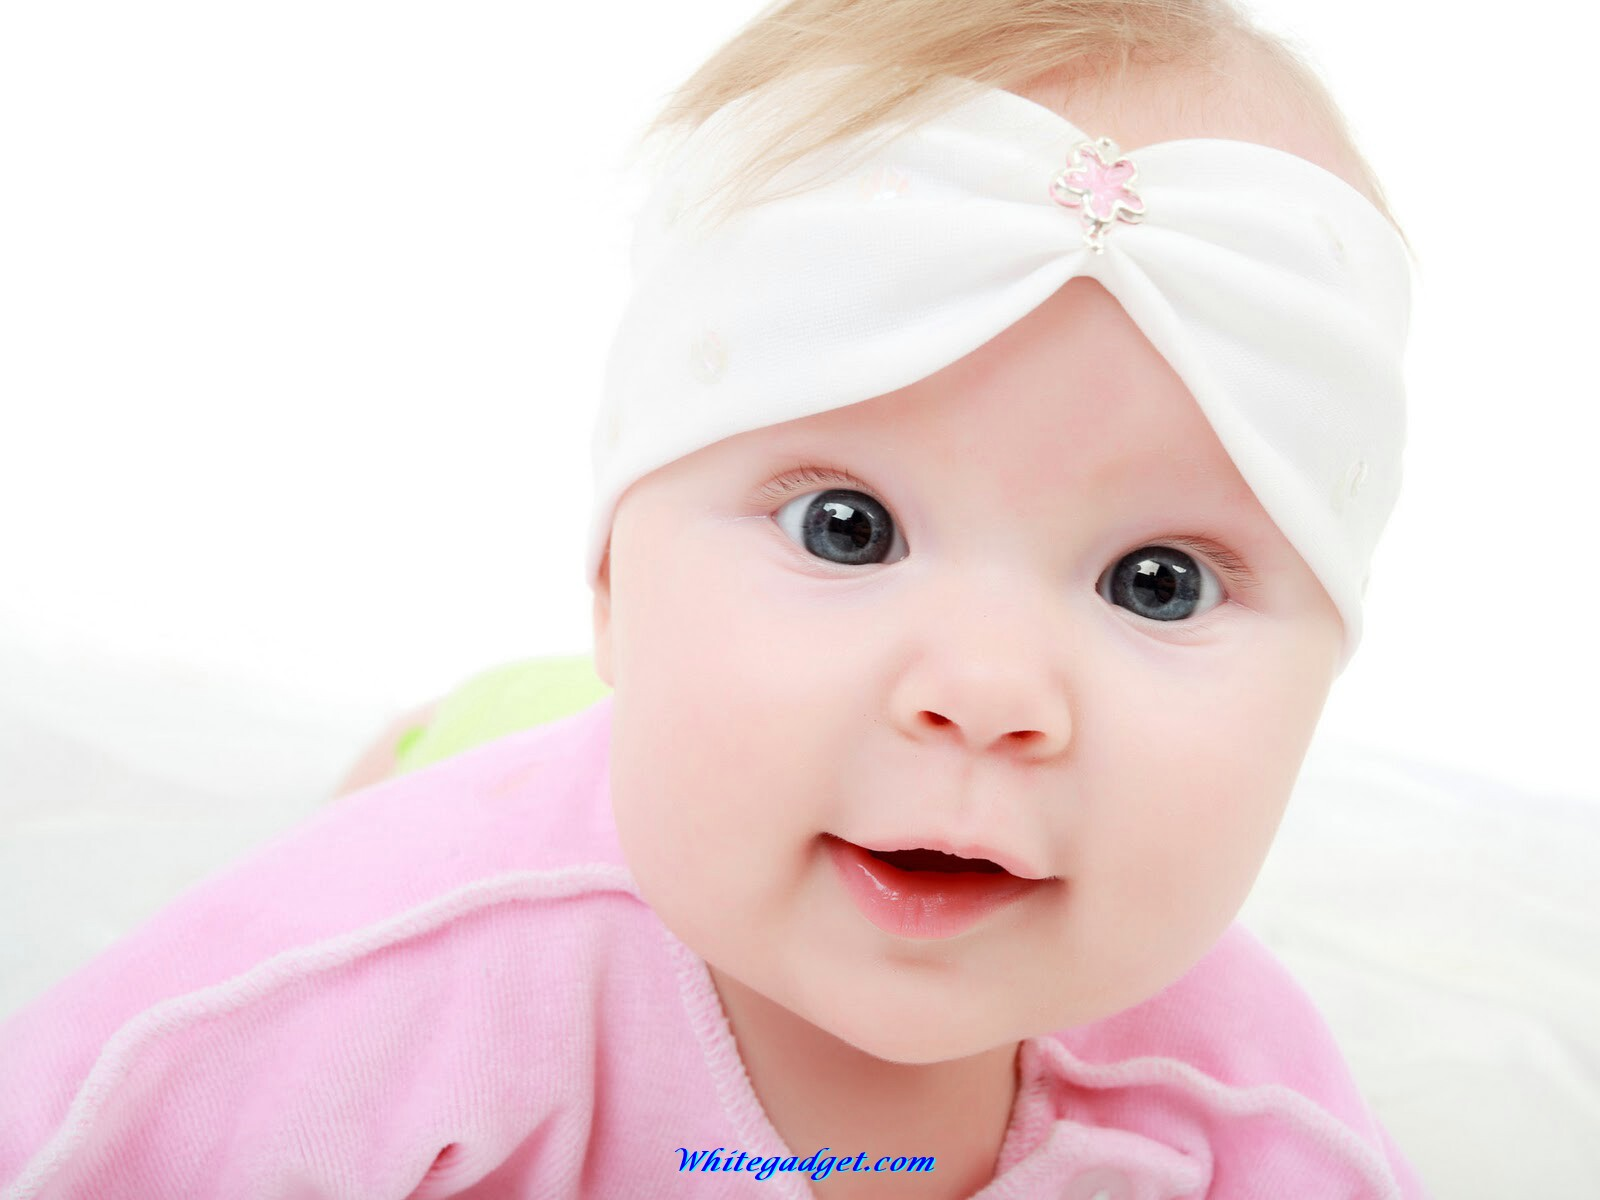 99952d1332739592 Cute Baby Cute Baby Pictures Wallpaper